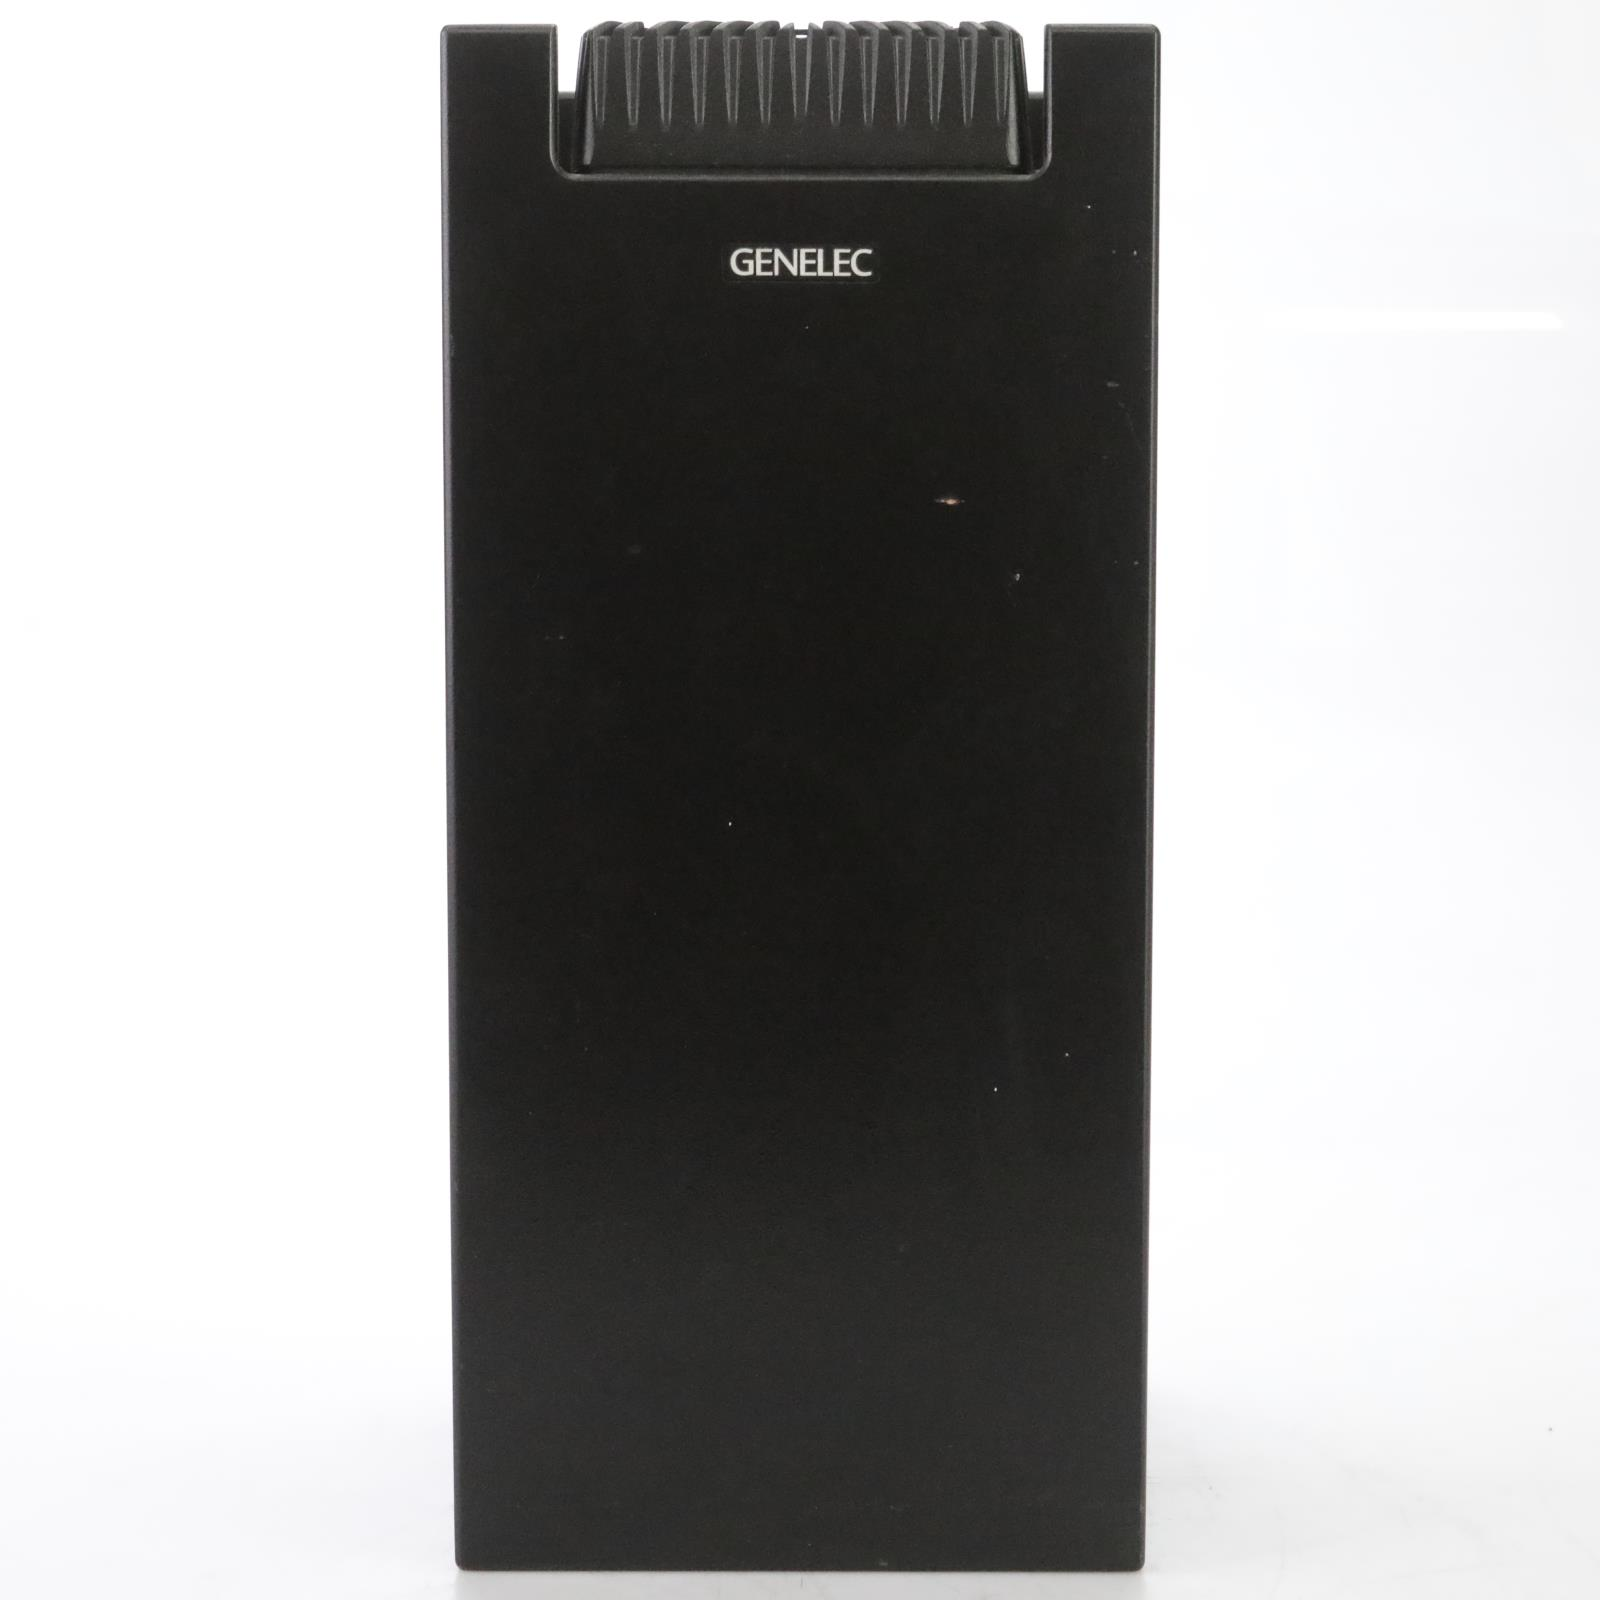 Genelec 1091A Active Subwoofer Powered Sub Owned by David Roback #44750